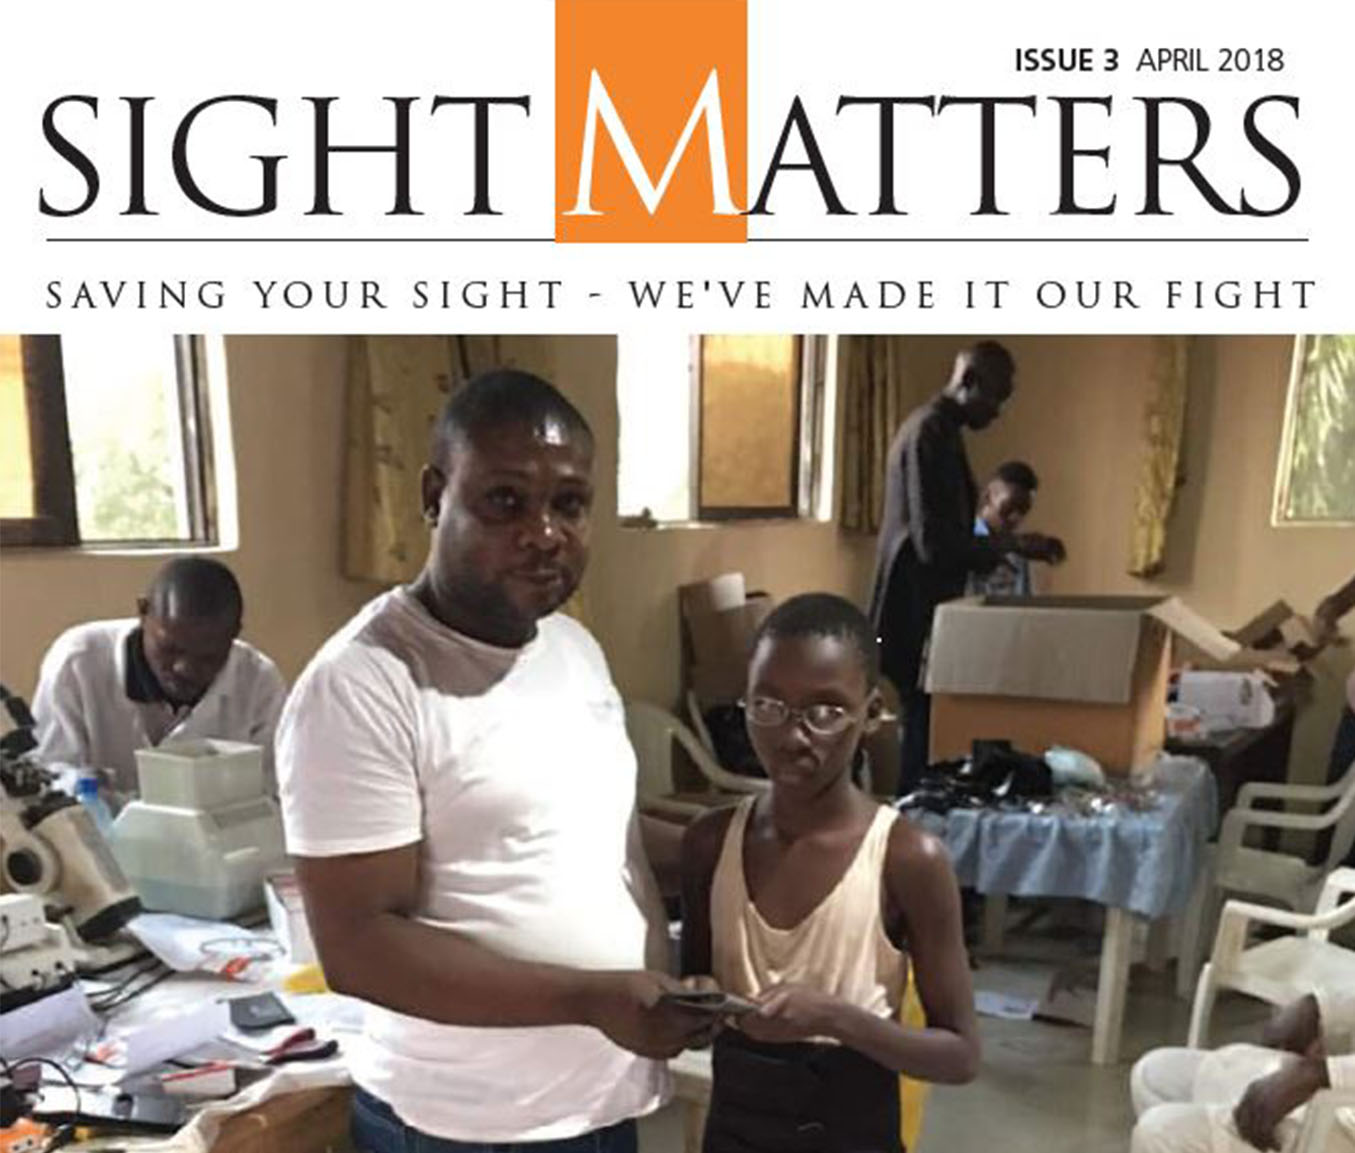 Sight Matters – Issue 3 April 2018